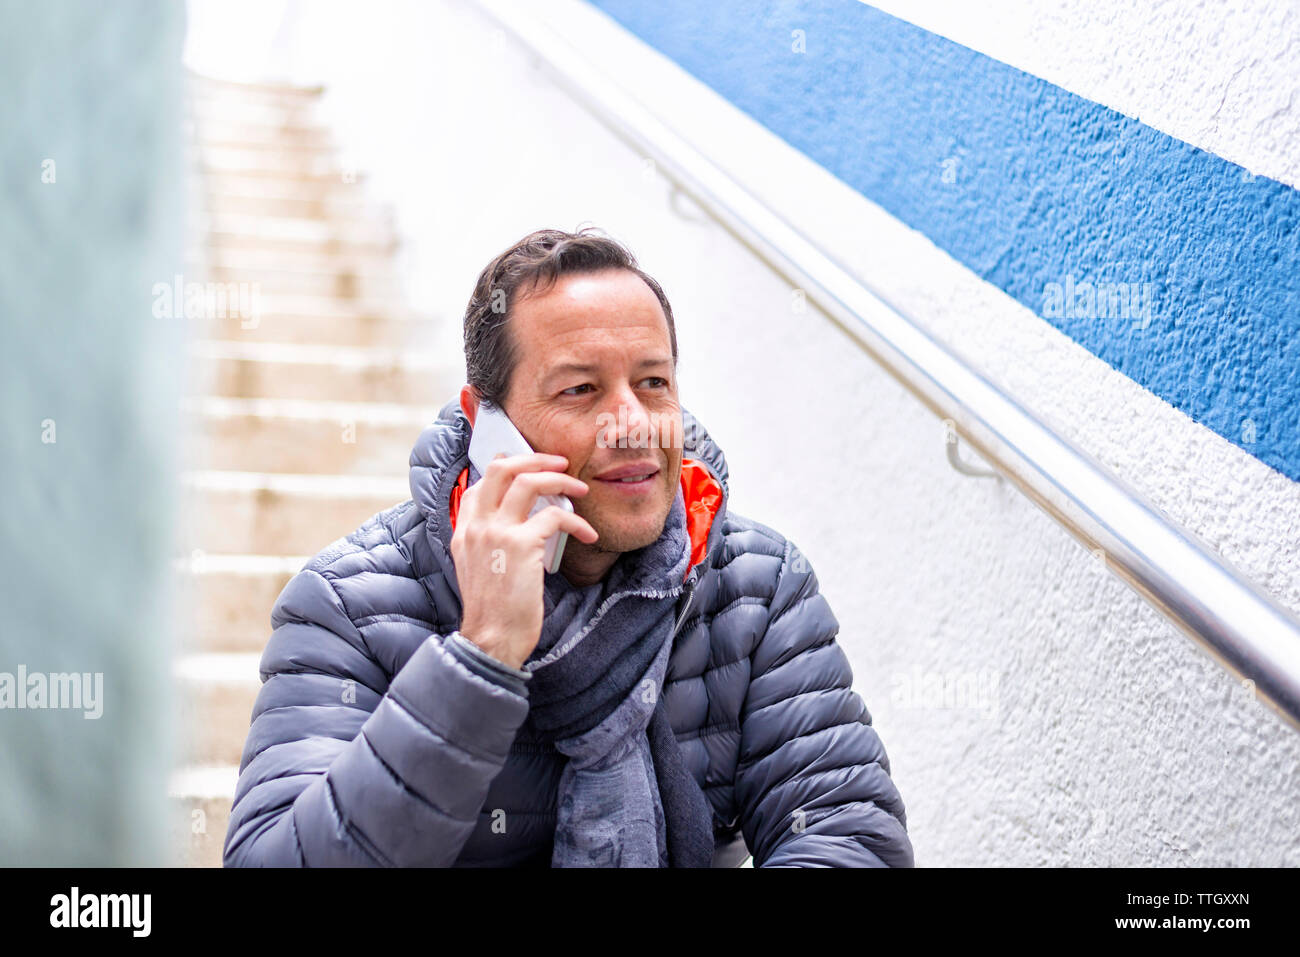 Man using a smartphone while sitting on a staircase outdoor. Stock Photo